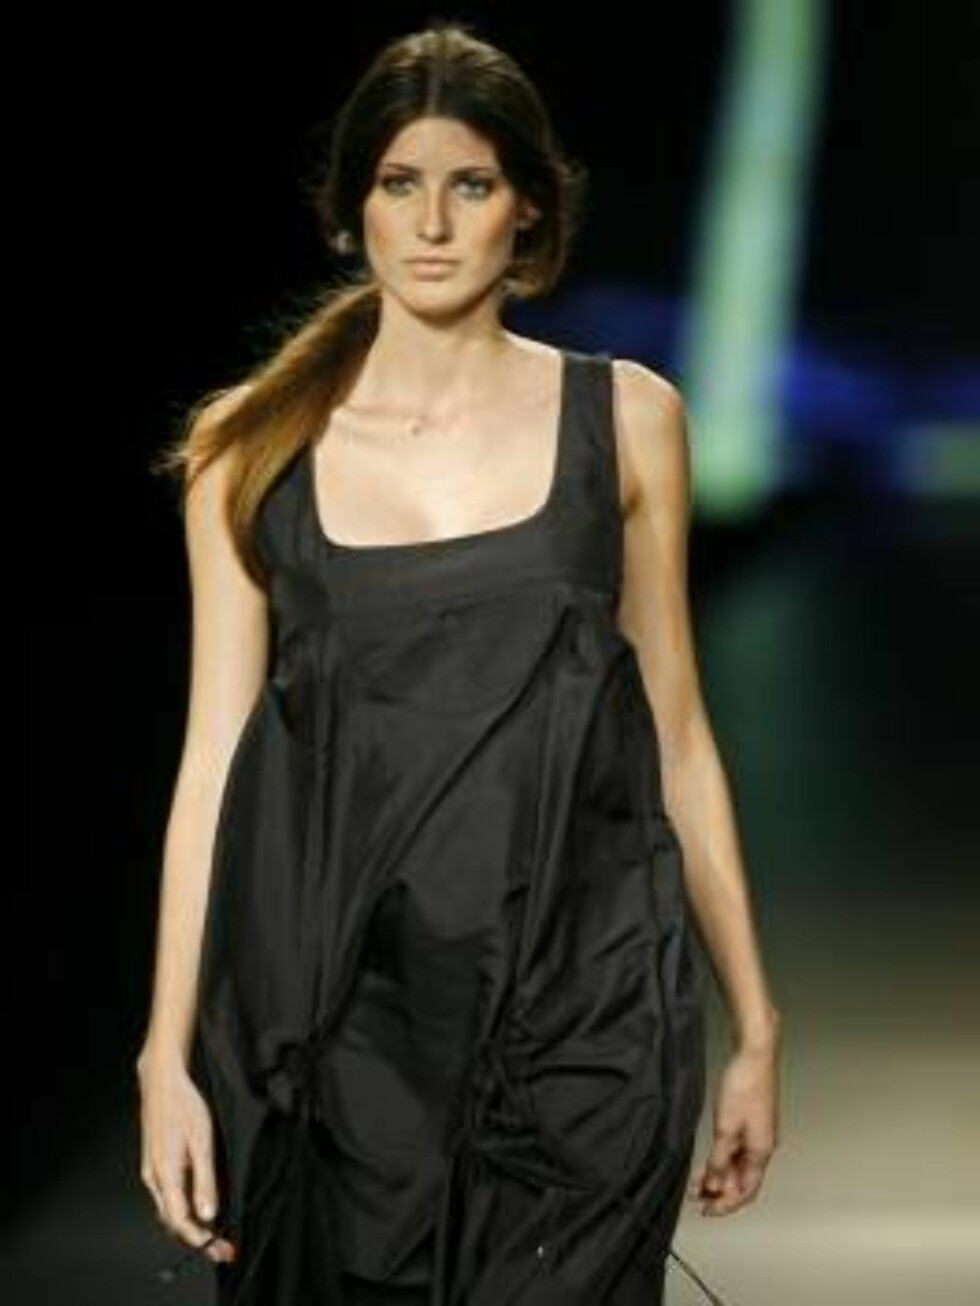 A model shows a design of  Osklen's collection during the Sao Paulo Fashion Week in Sao Paulo, Brazil,  Friday, July 14, 2006. (AP Photo/Andre Penner) Foto: AP/Scanpix